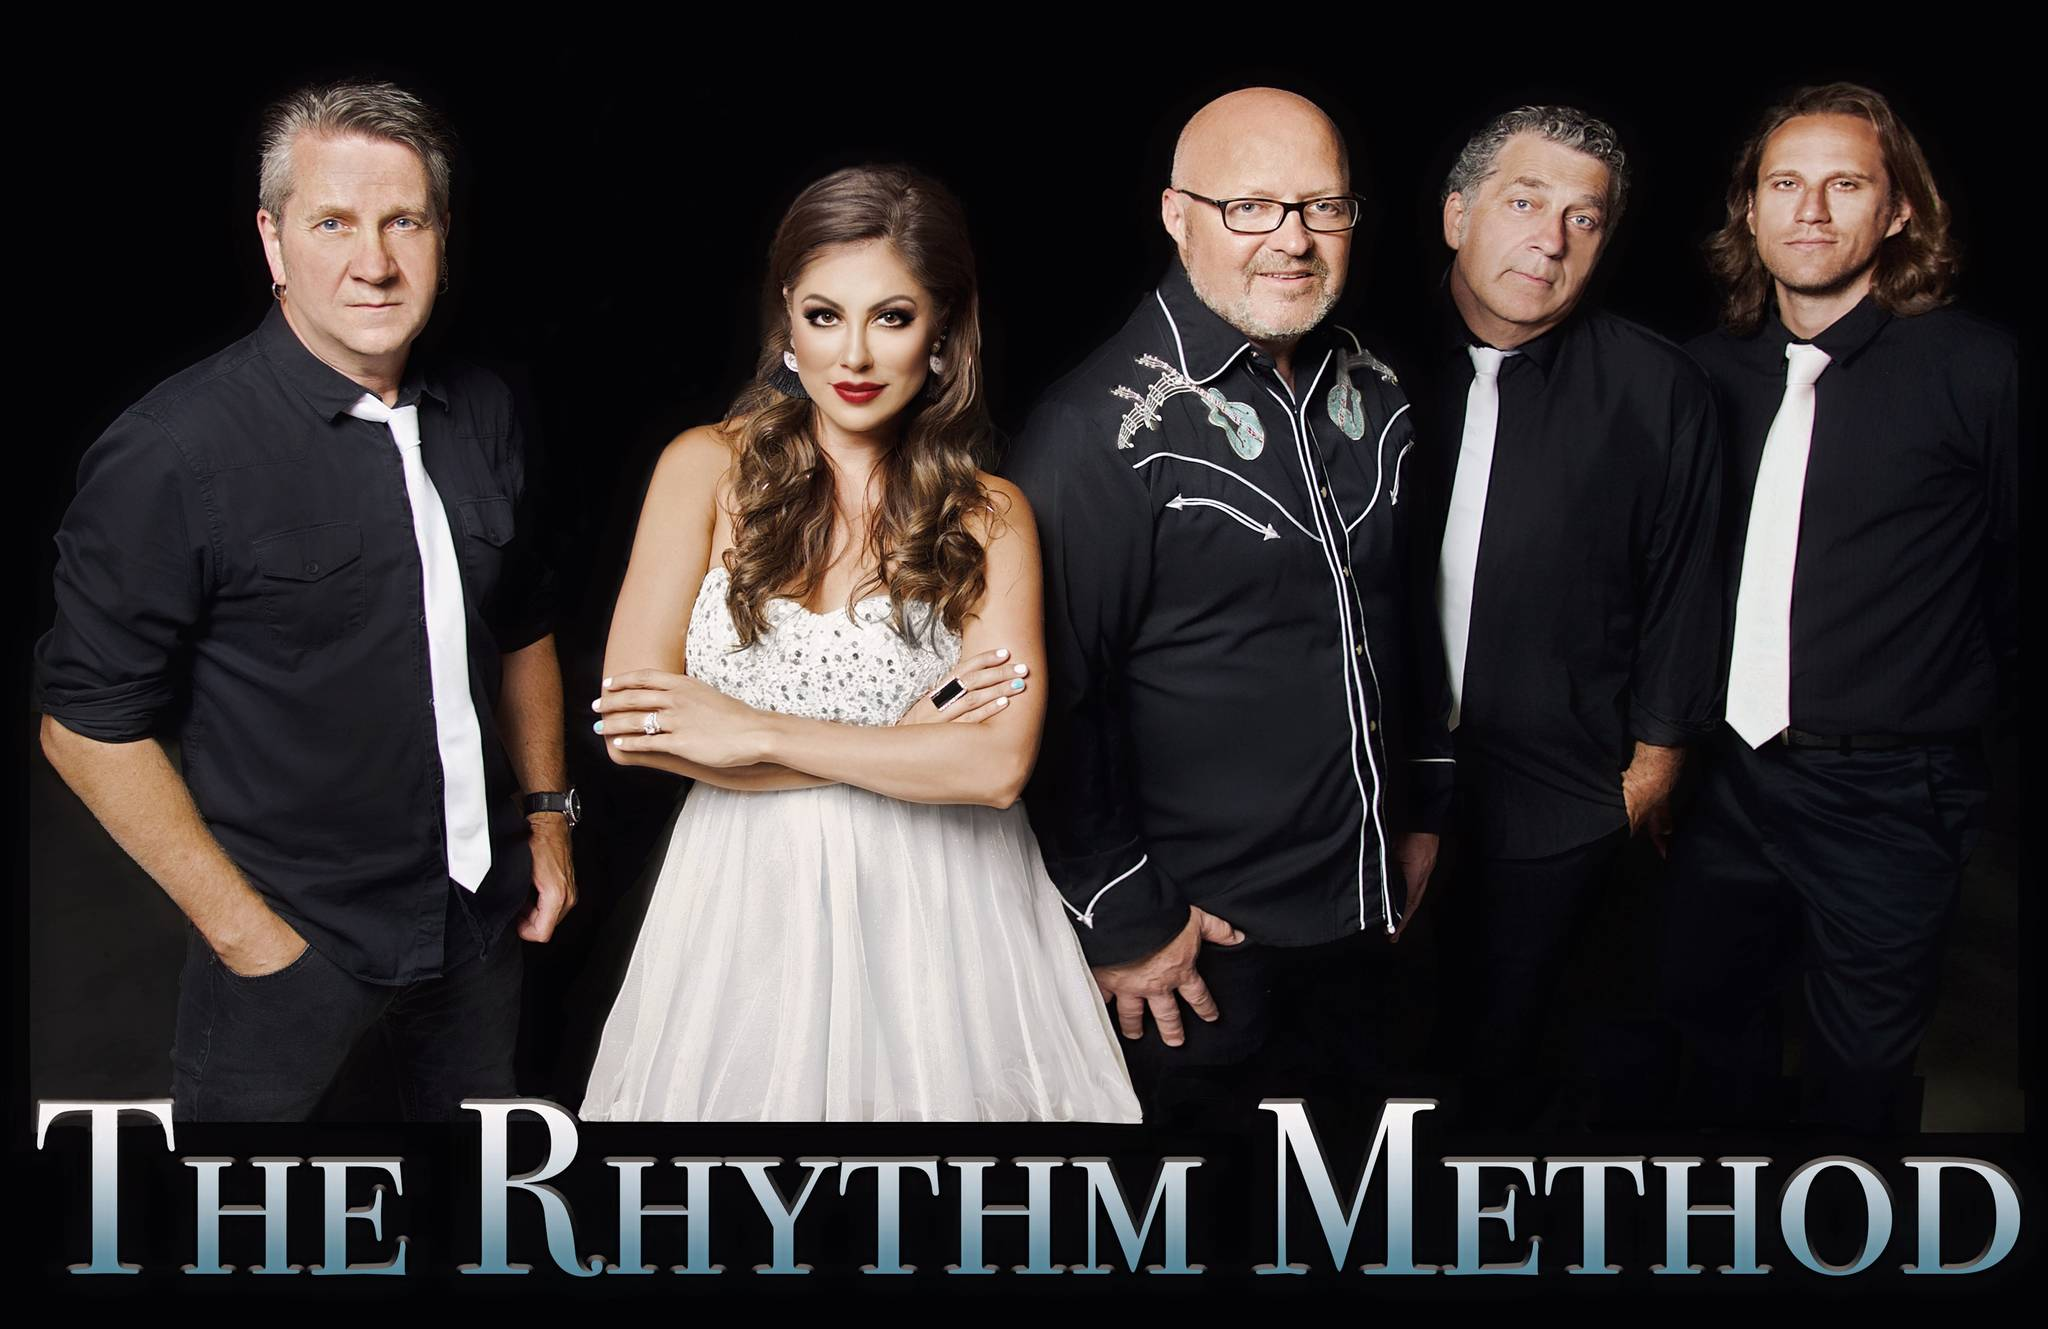 This seven piece RnB, funk, pop and rock band is not new to the entertainment scene and is back for their fourth year supporting the Langley Good Times Cruise-In, happening Sept. 11. 2021 in Aldergrove. The Rhythm Method play favourites from the 1960s, '70s, best of the '80s and '90s, as well as today's dance hits. (Cruise-In/Special to Langley Advance Times)